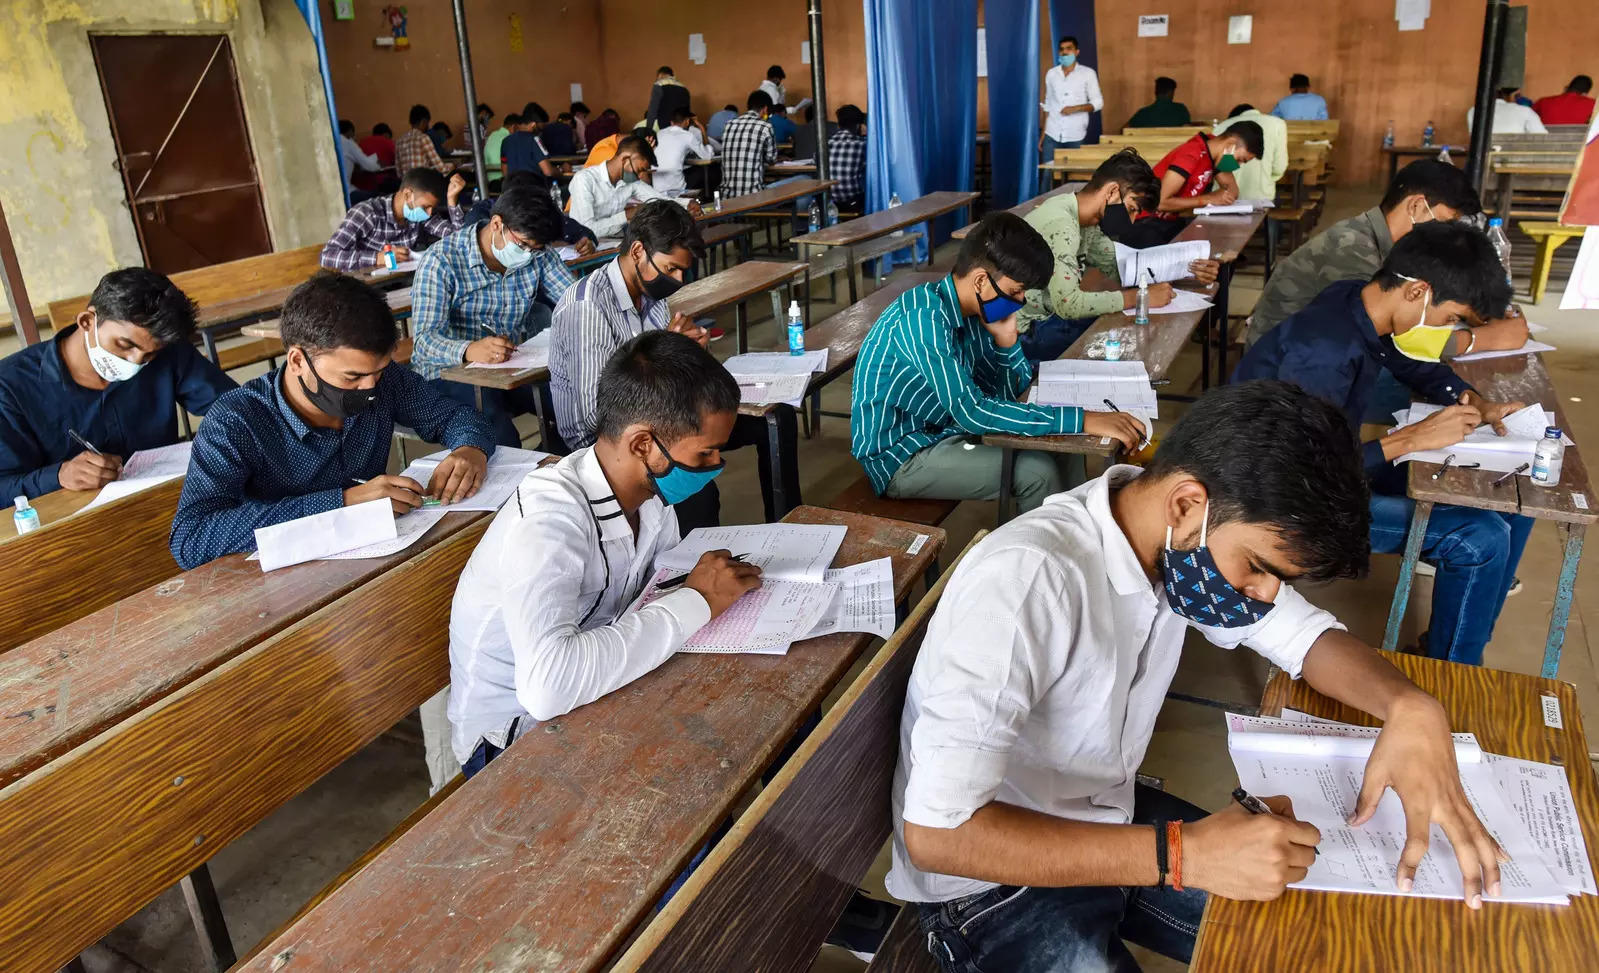 Haryana is ready to hold class 12 board exams between June 15-20